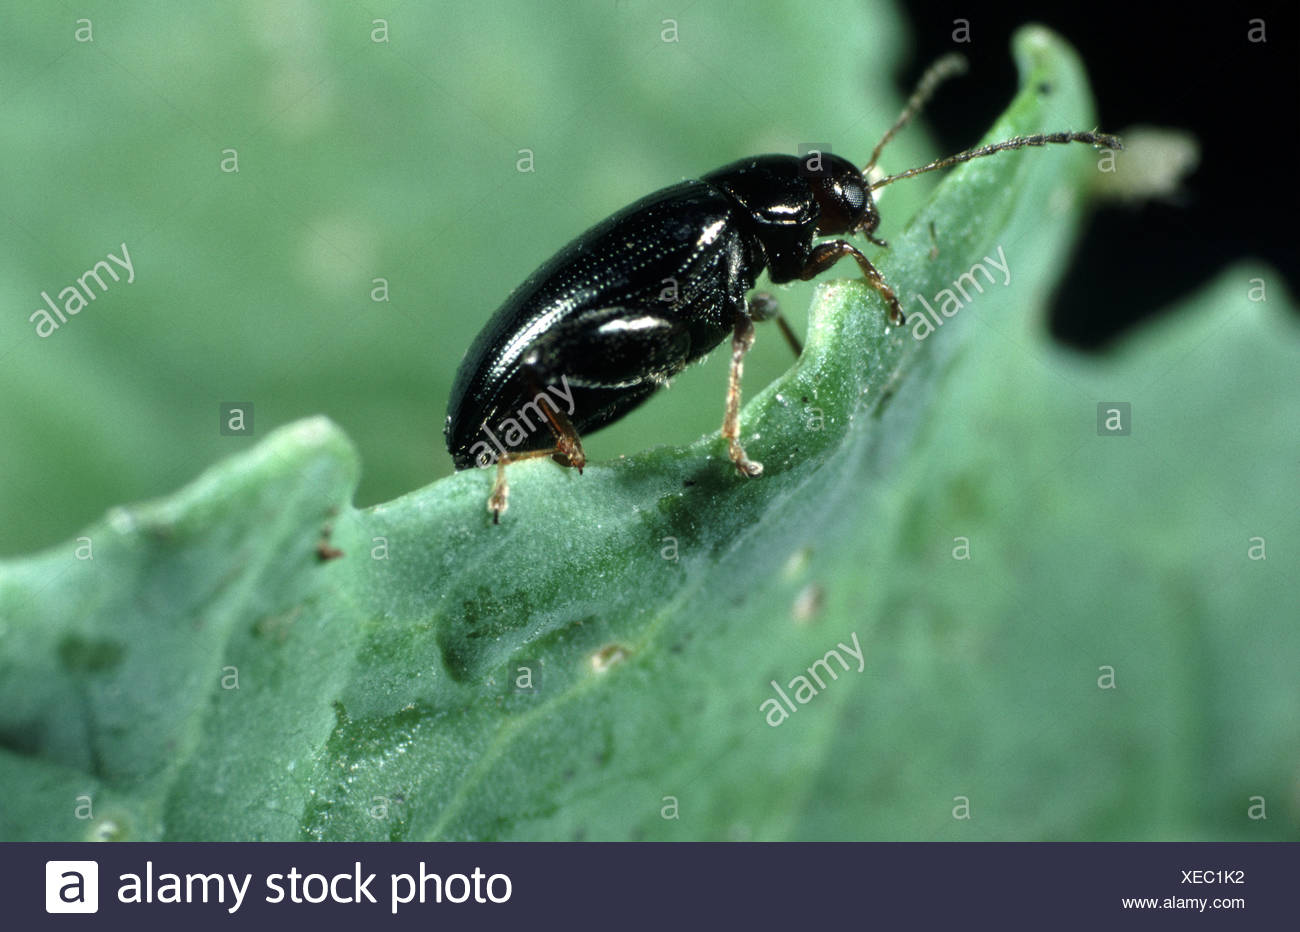 insect pest psylliodes photos & insect pest psylliodes images - alamy